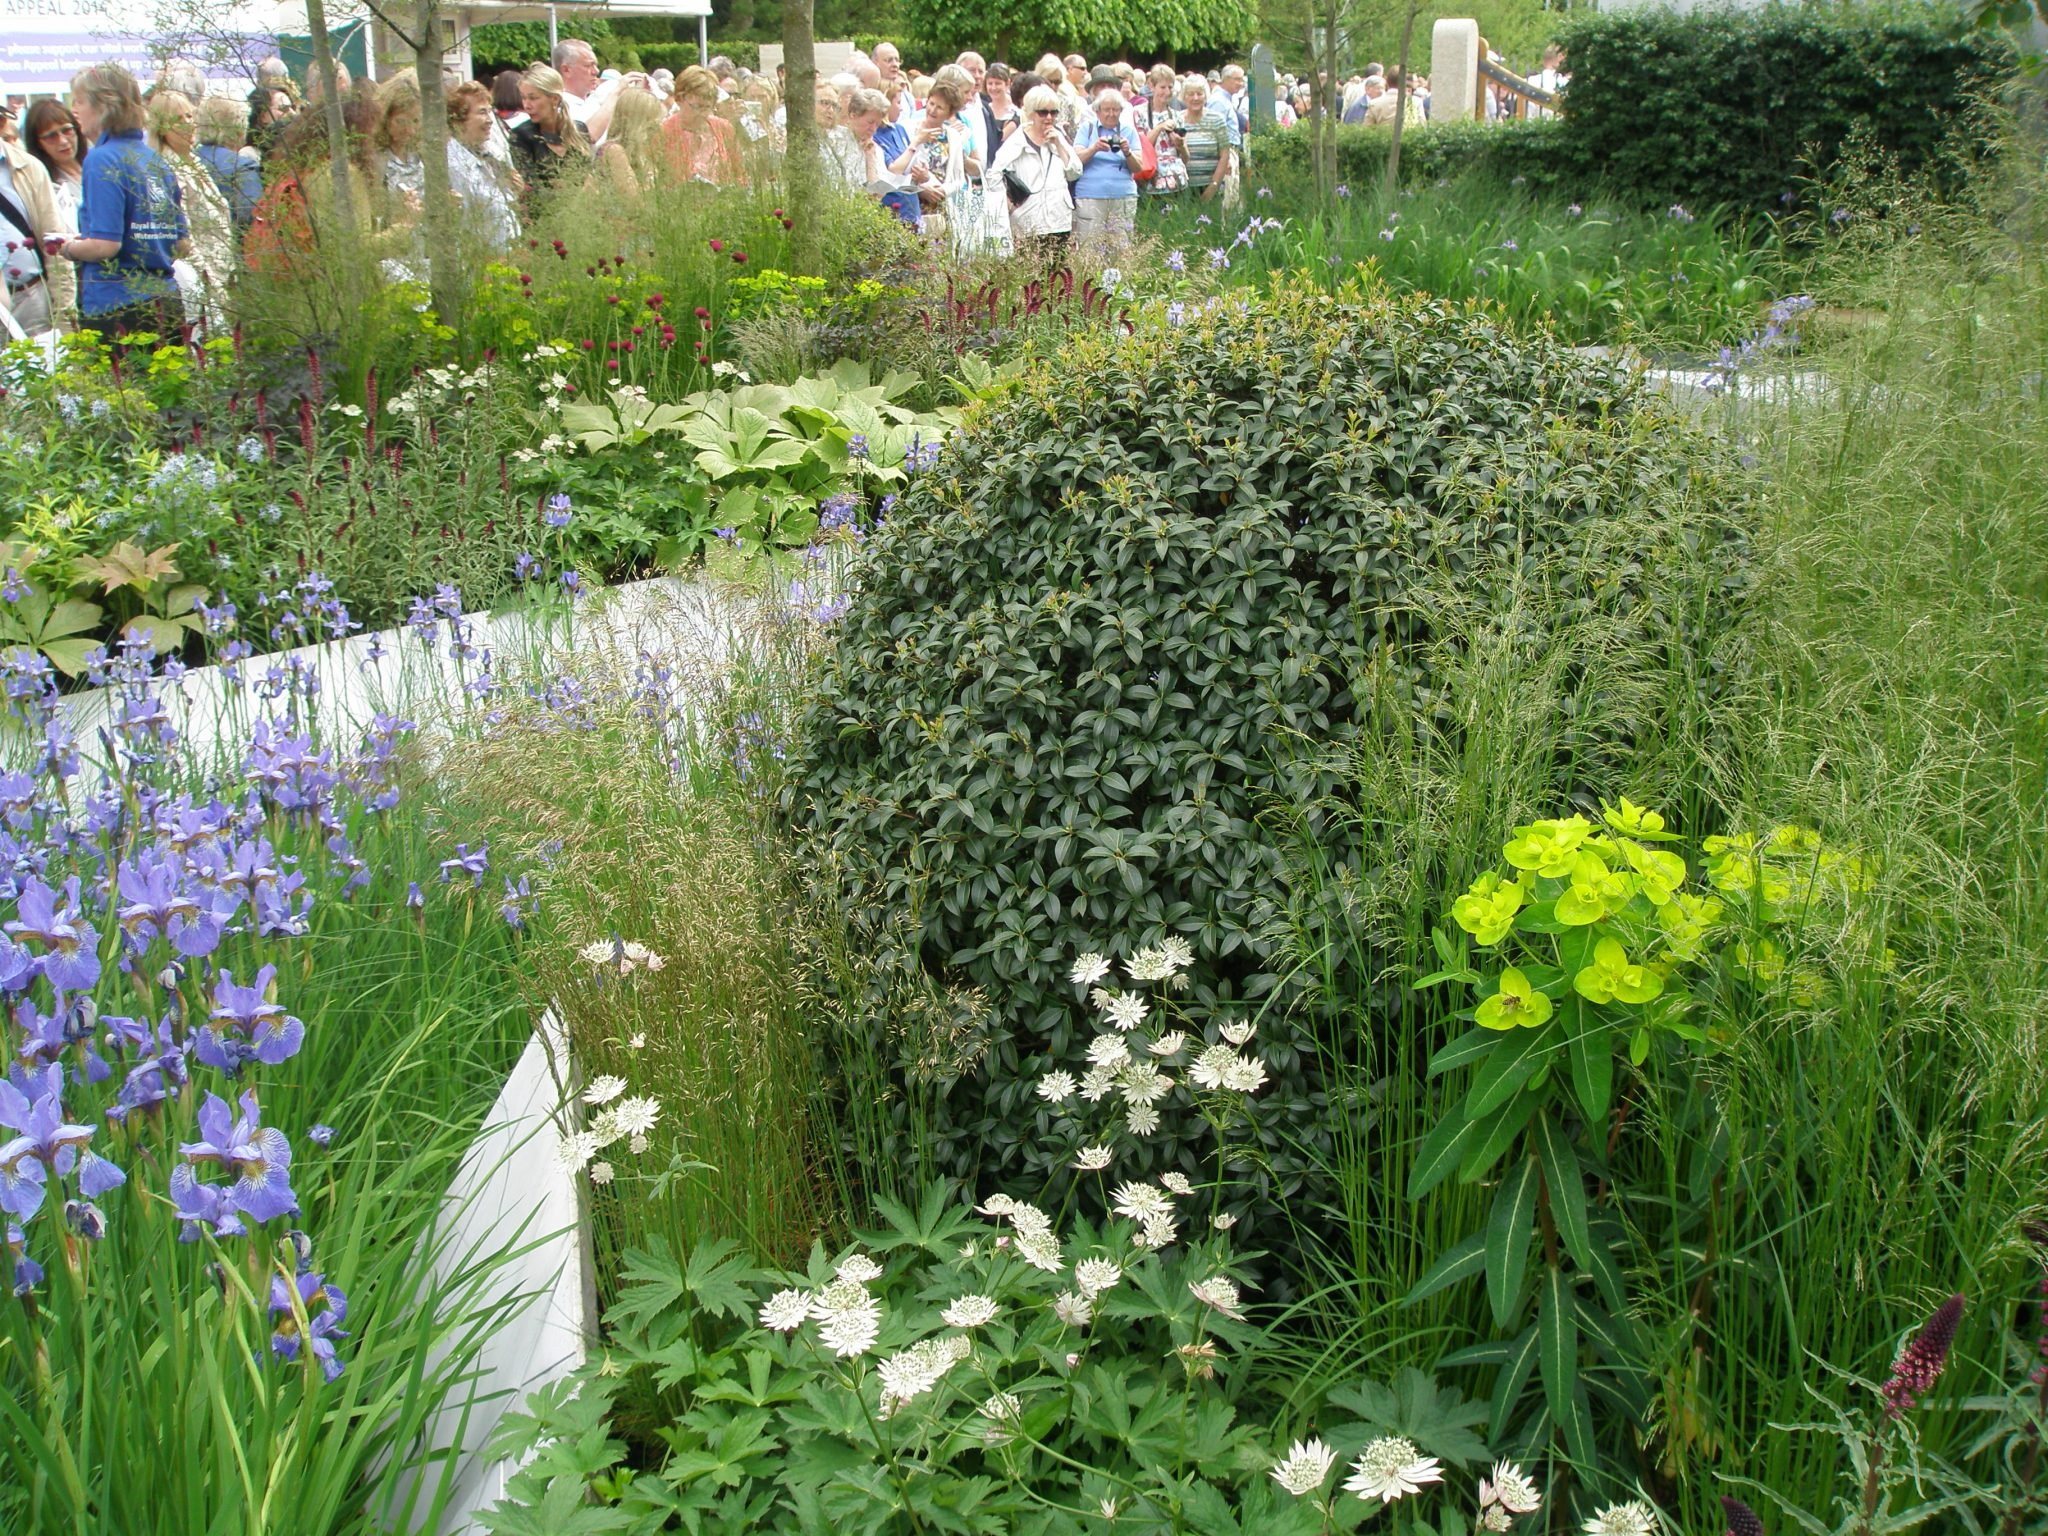 RBC Waterscape Garden, with Sea of Humanity